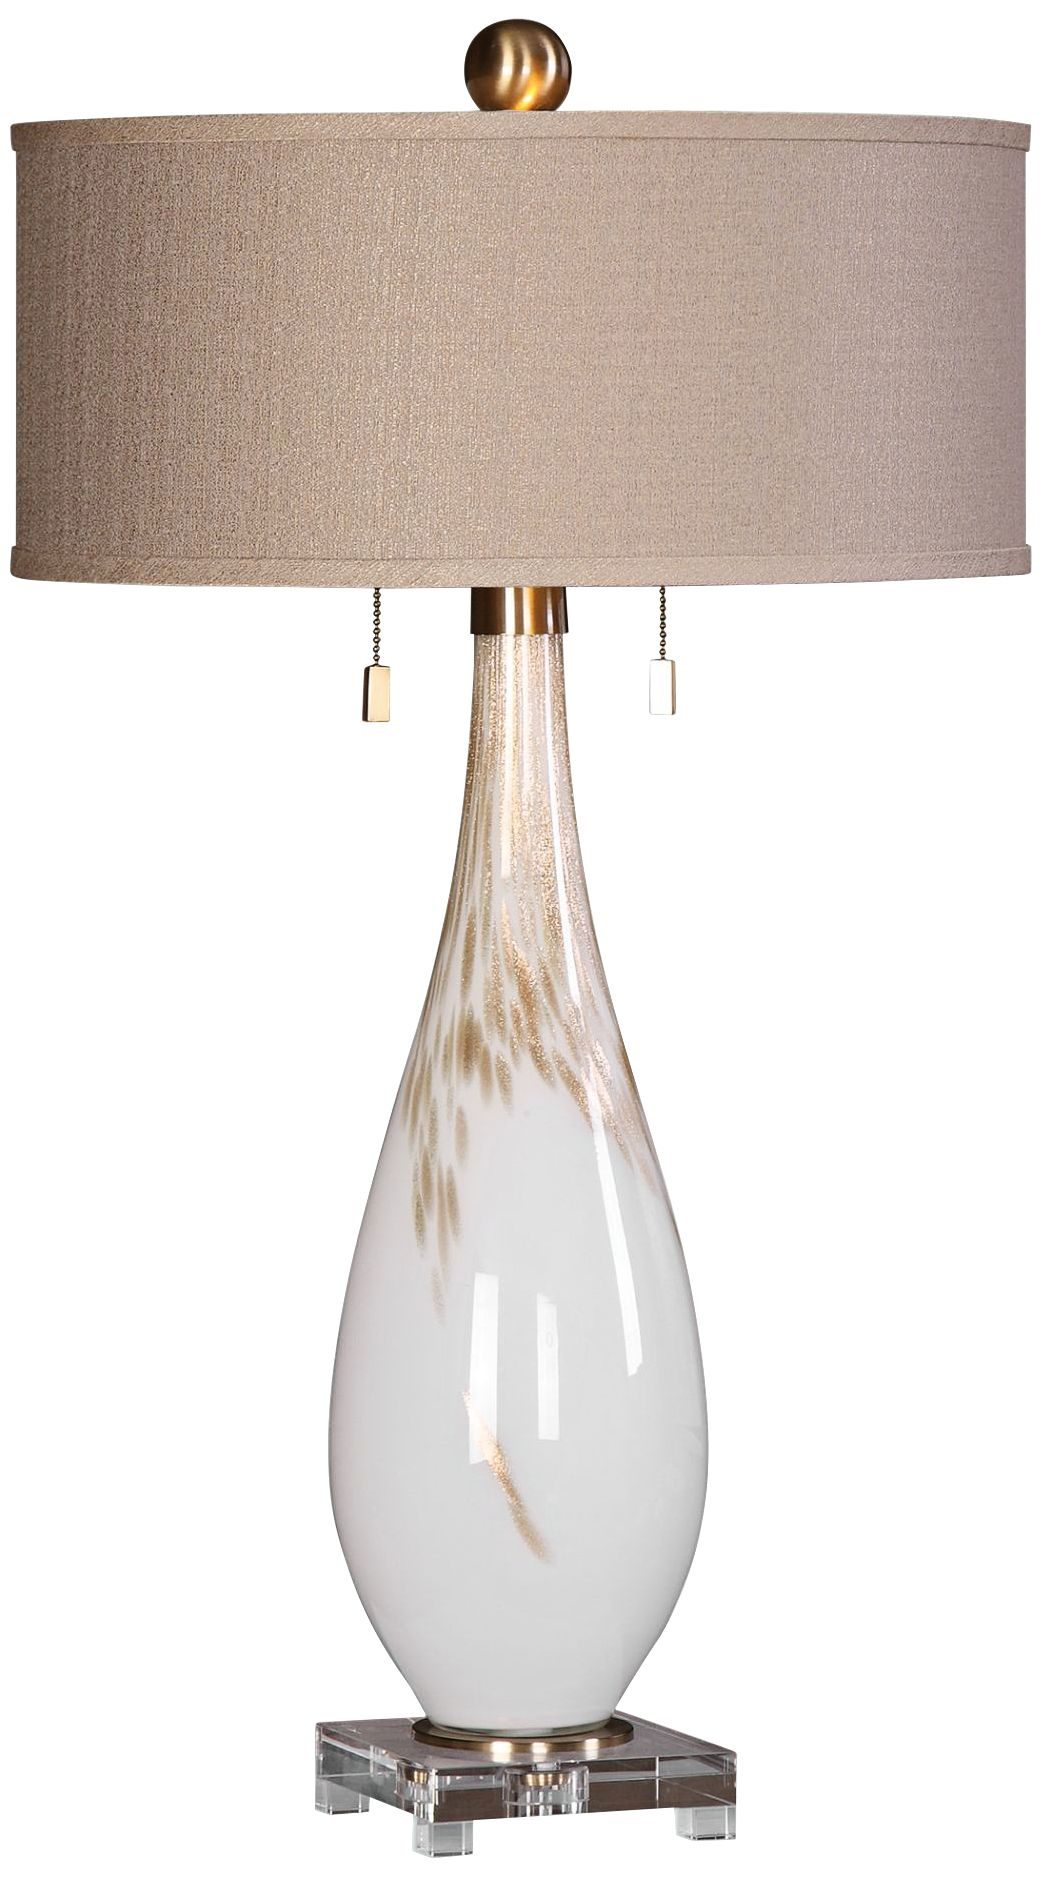 Delightful Uttermost Cardoni Gloss White Hand Blown Glass Table Lamp